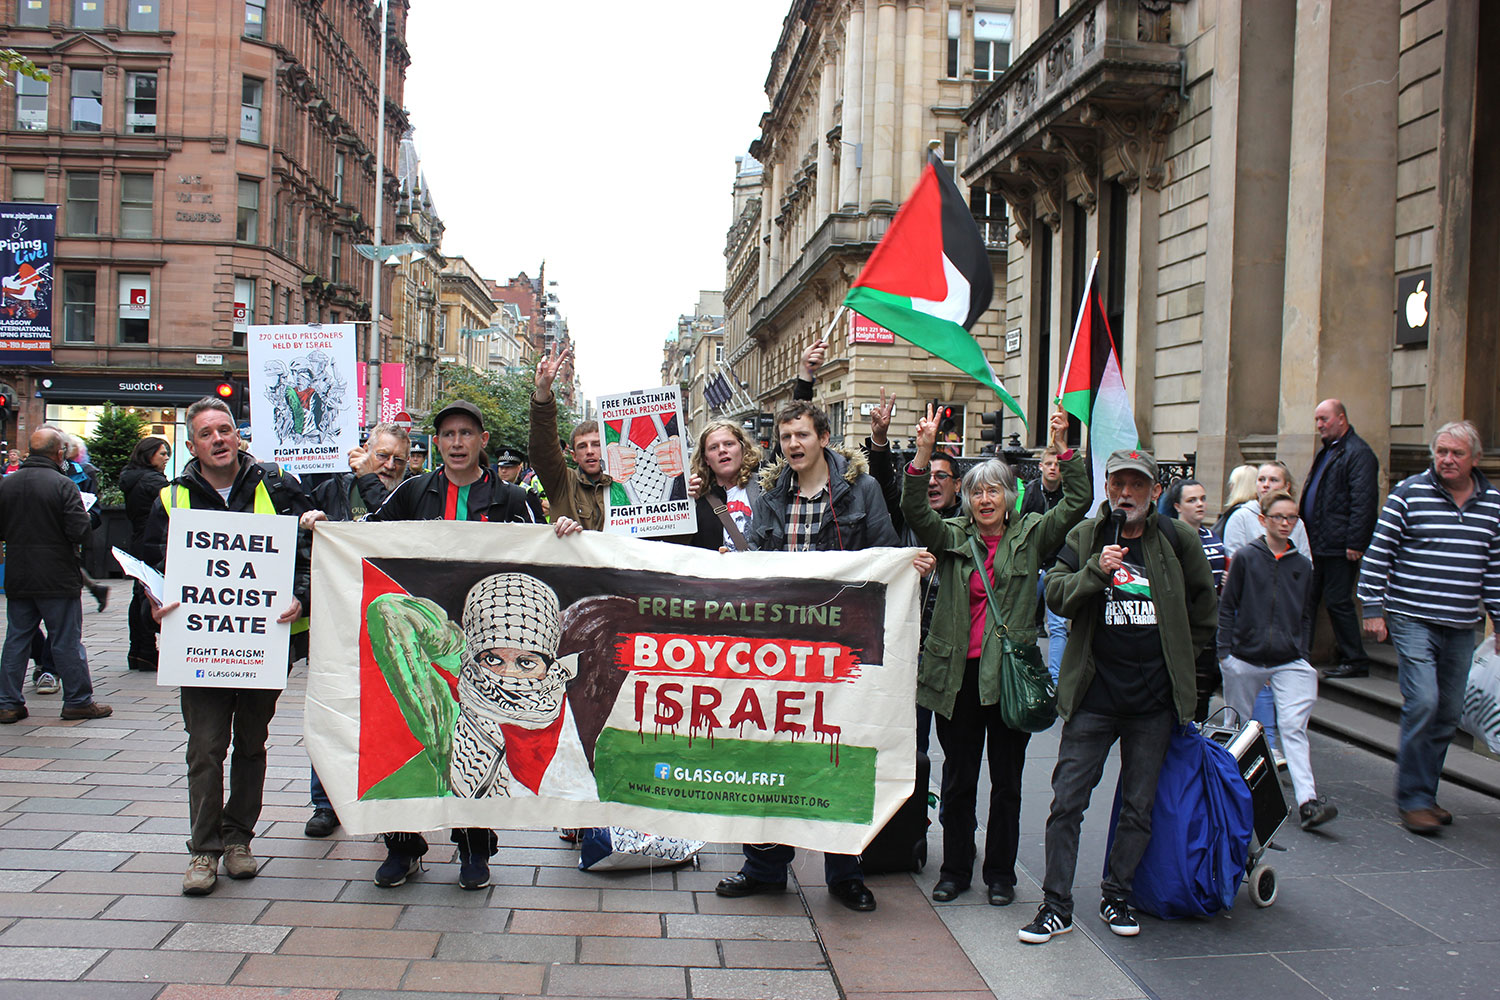 Defend Palestine Solidarity - Fight back